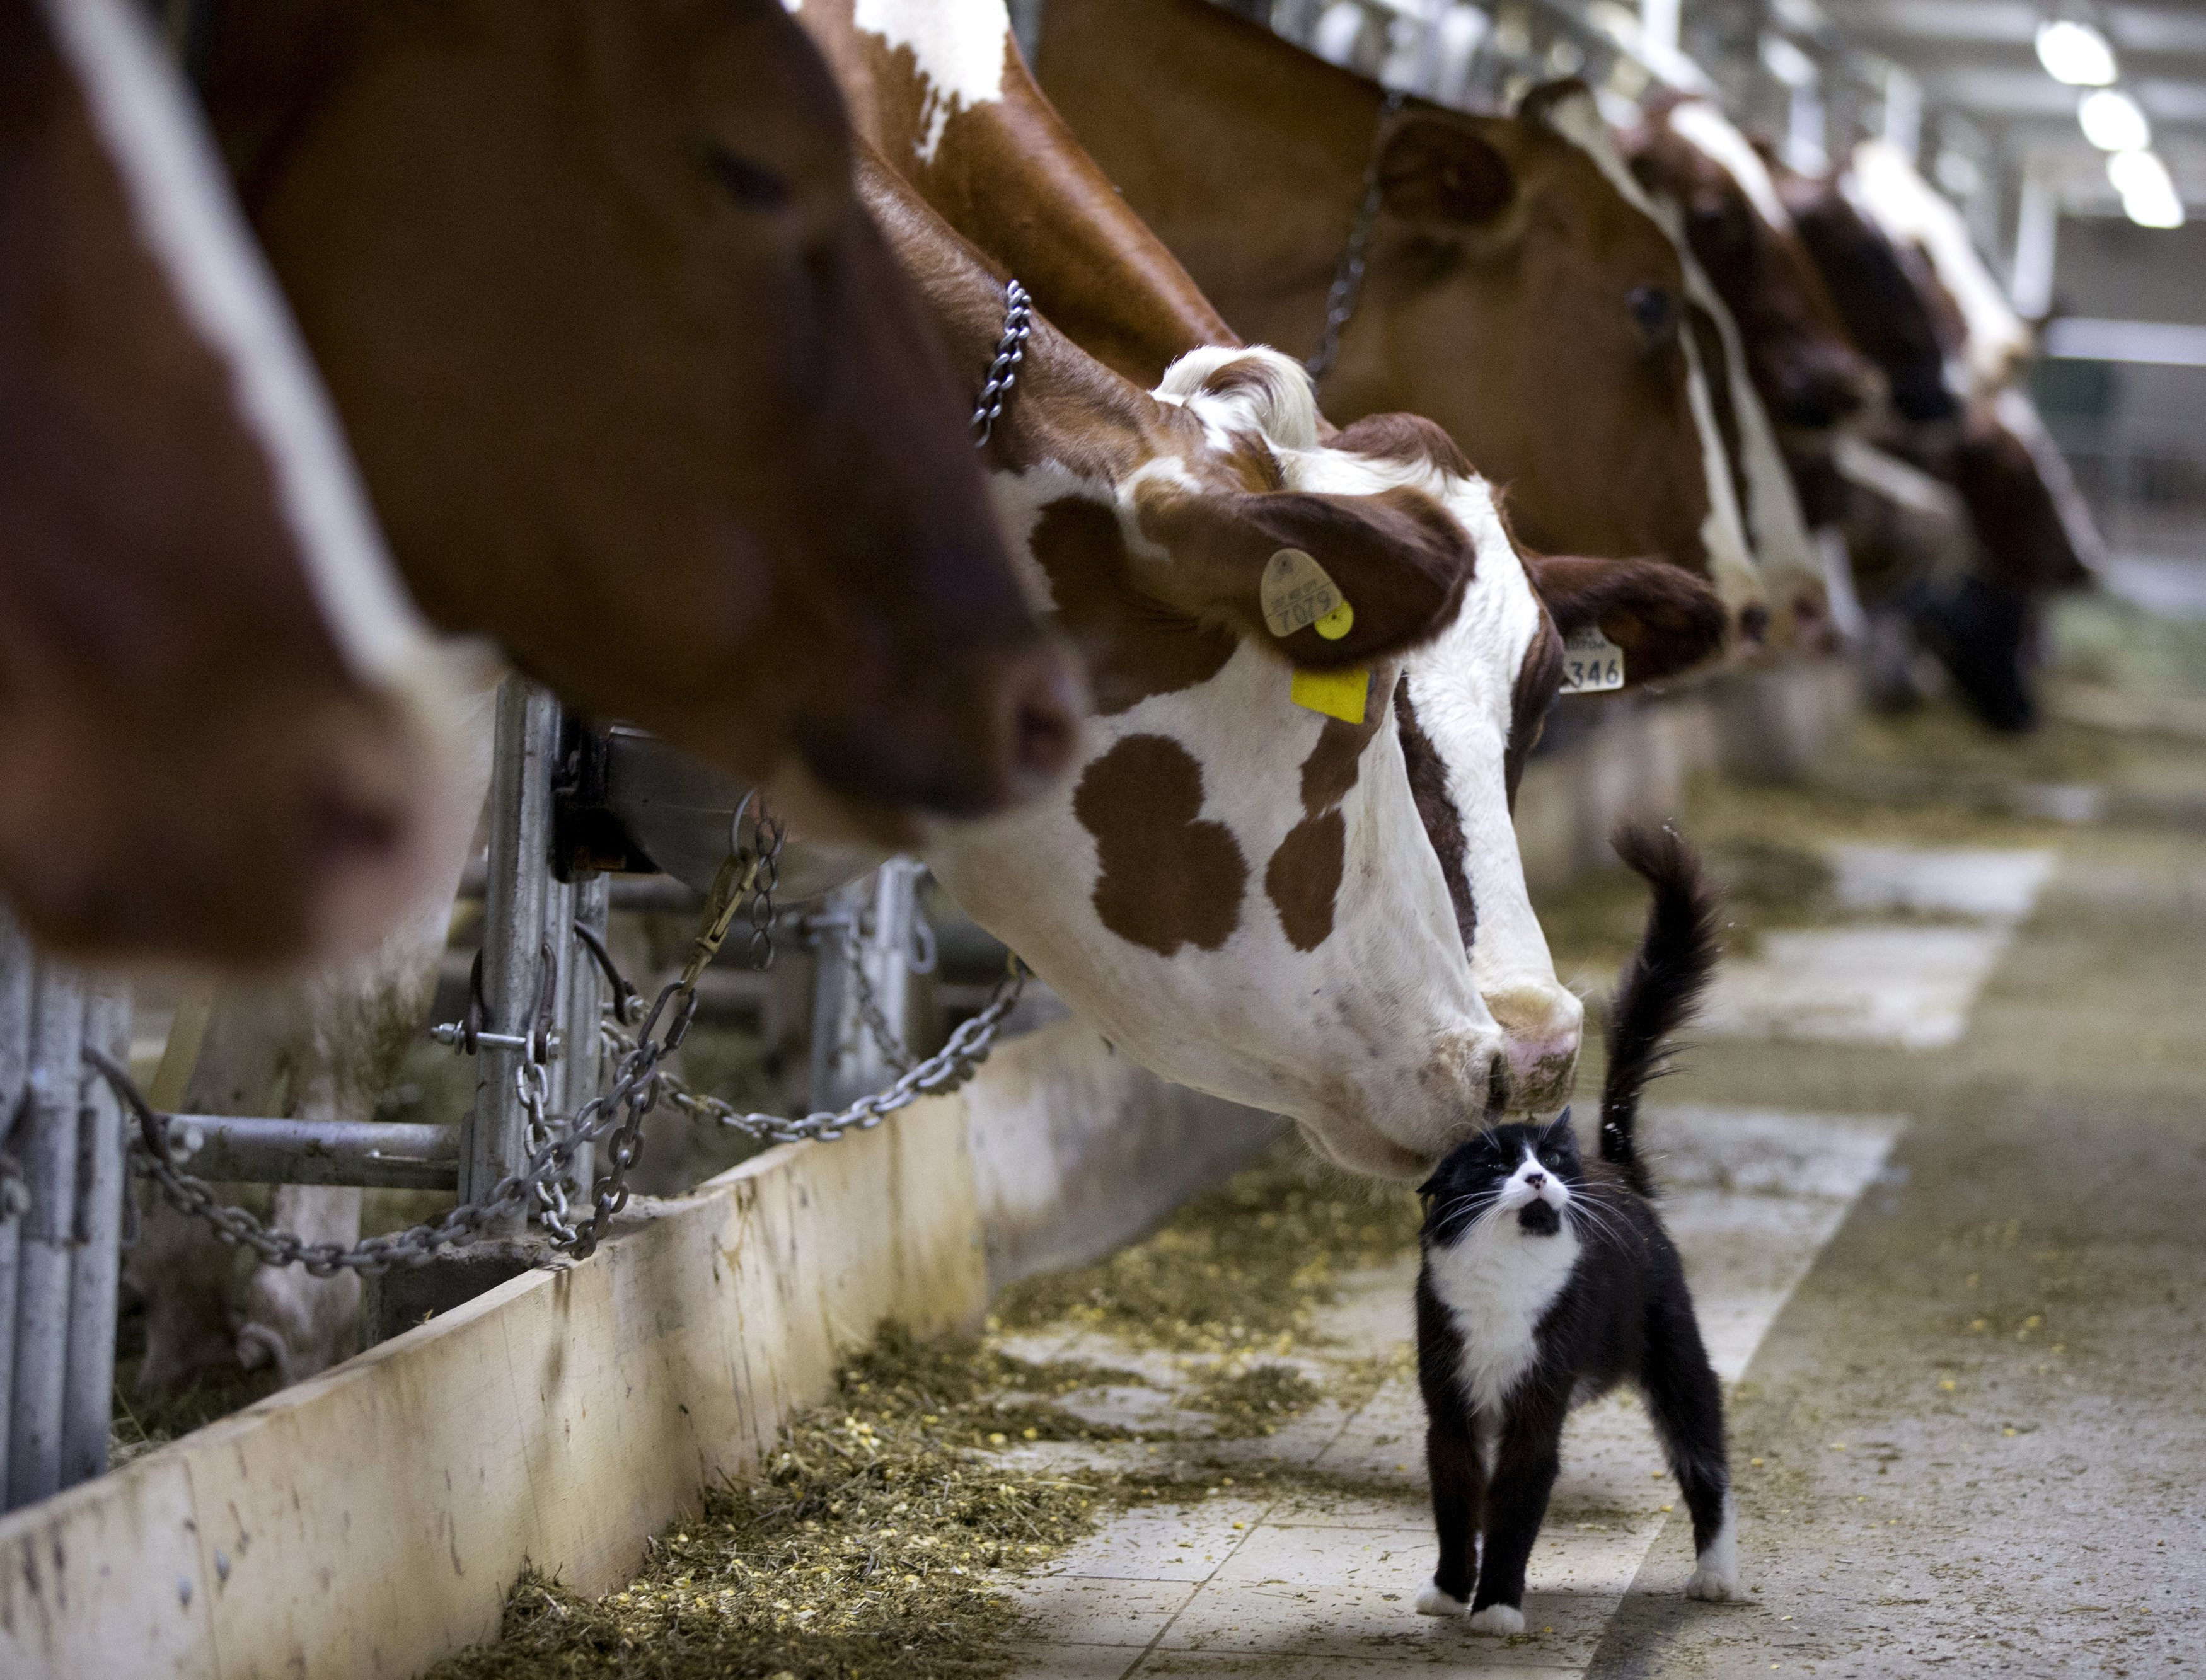 cow0727-2 Dairy cows nuzzle a barn cat as they wait to be milked at a farm in Granby, Quebec.